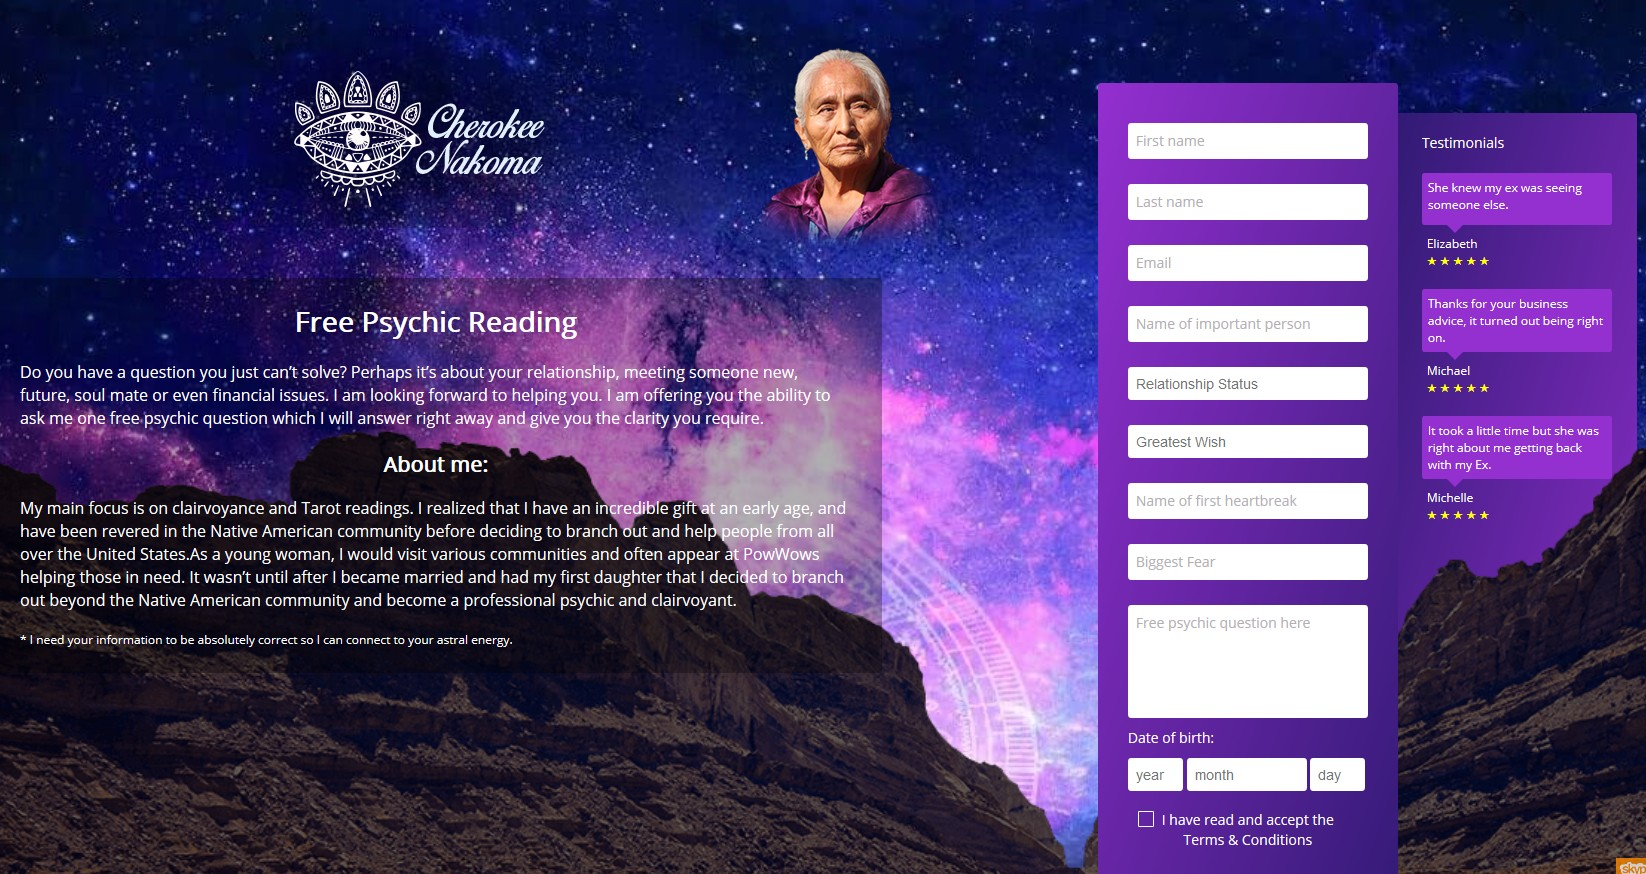 Cherokee Nakoma is a Native American psychic, clairvoyant and tarot